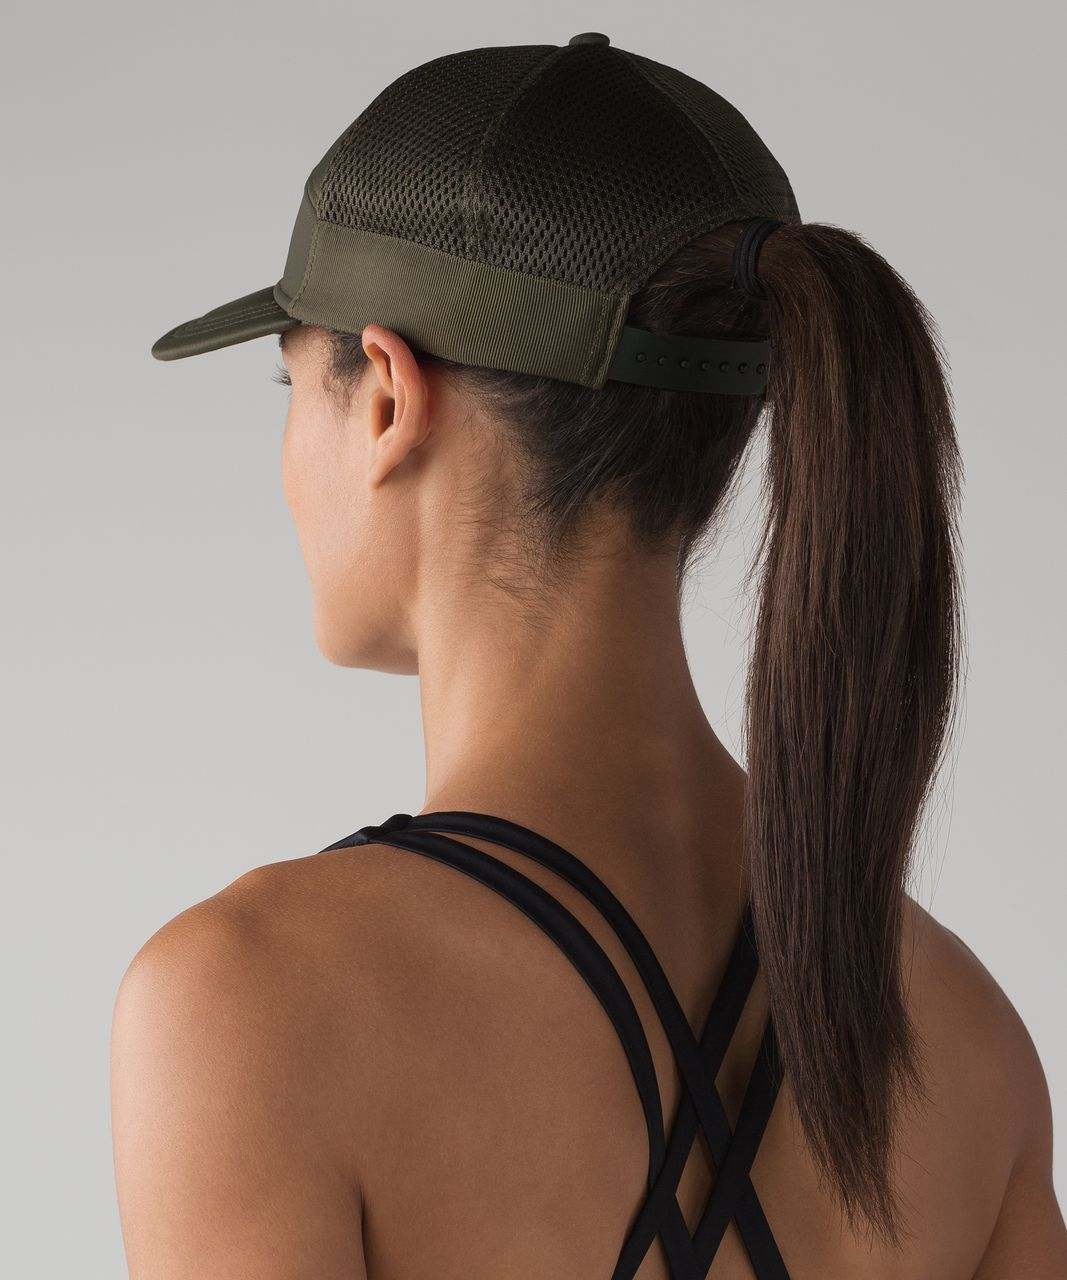 Lululemon Dash And Splash Cap - Dark Olive